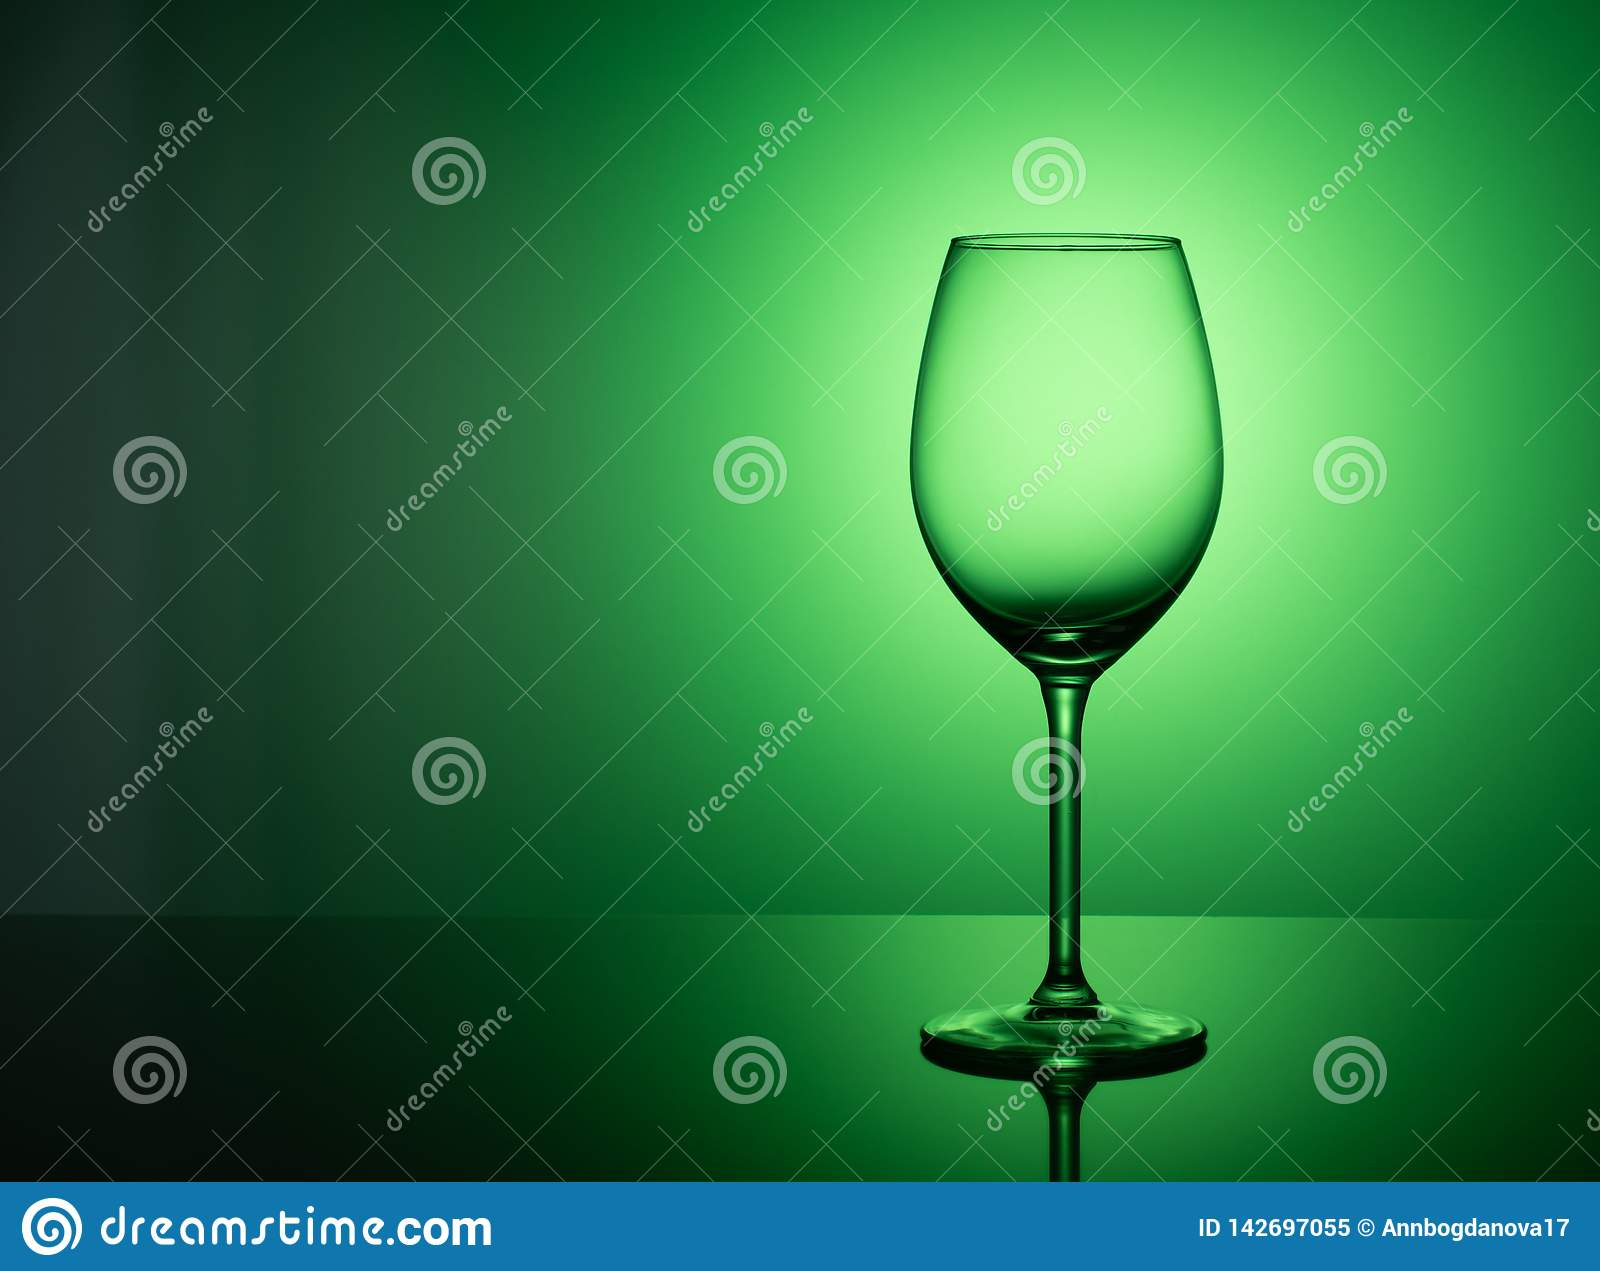 Empty glass stands on acrylic glass on a green background